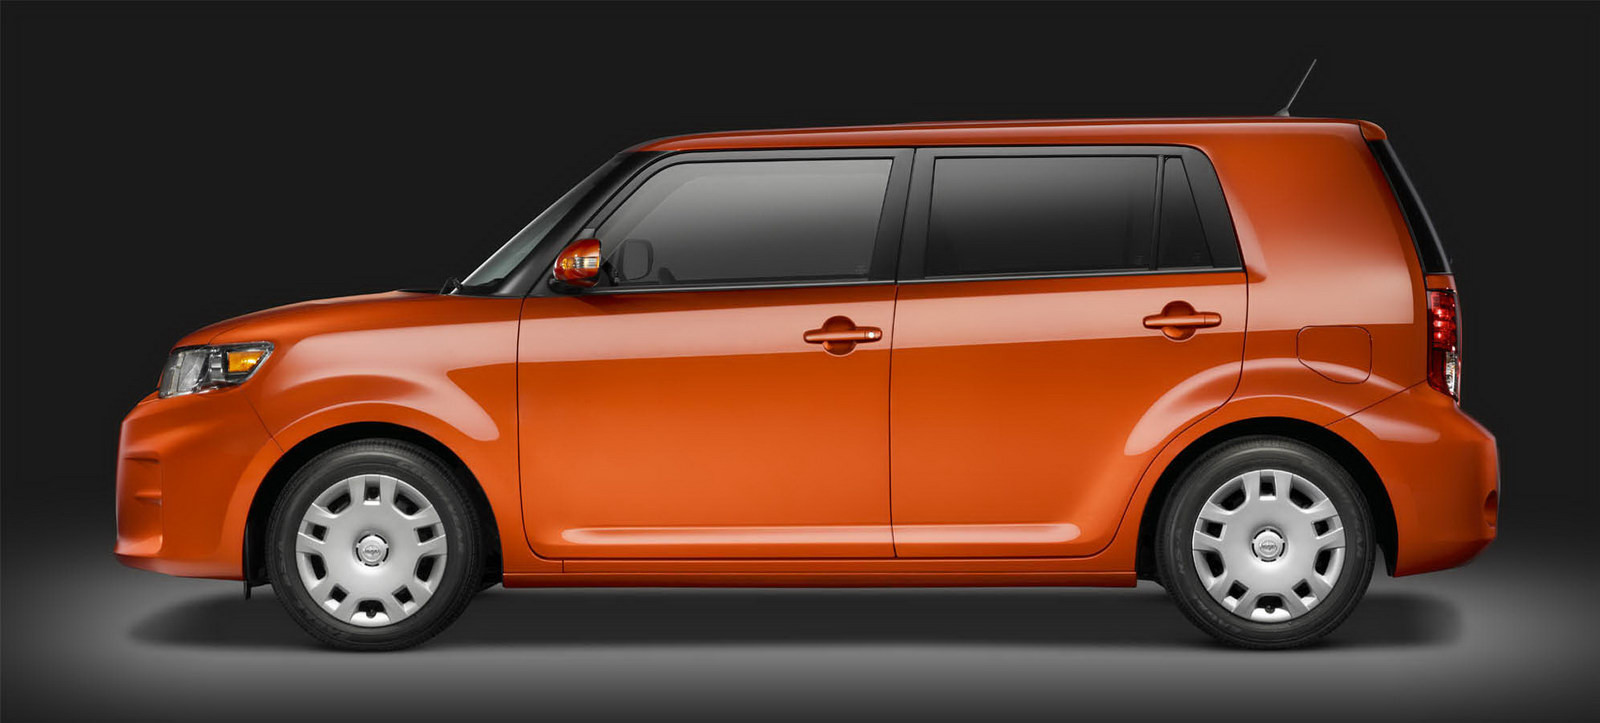 2012 scion xb release series 9 0 revealed. Black Bedroom Furniture Sets. Home Design Ideas